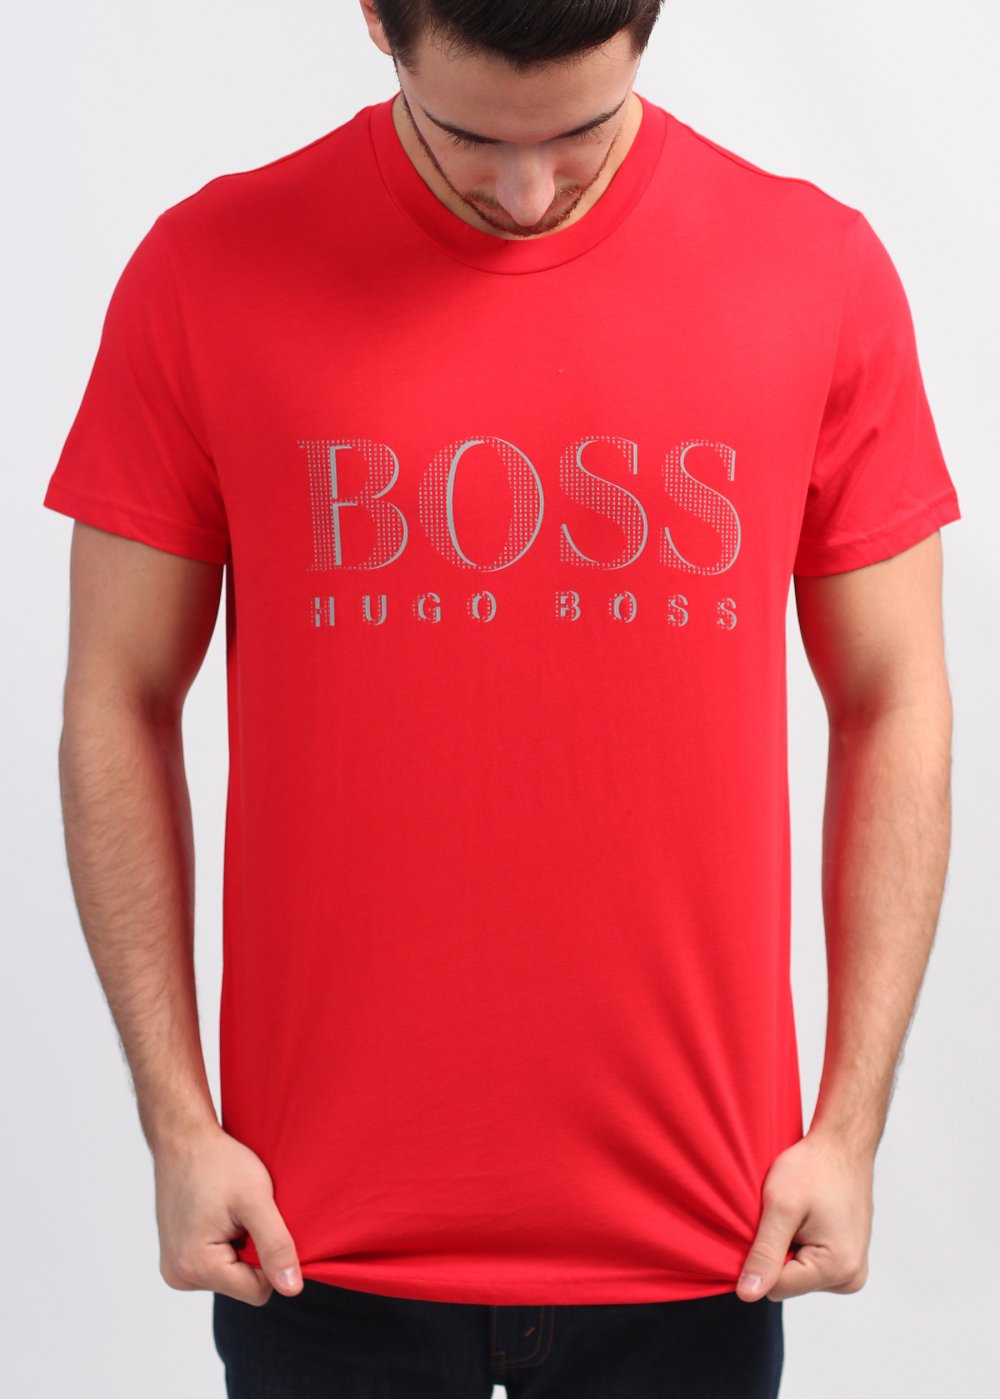 Hugo boss black logo t shirt bright red for Hugo boss t shirts online